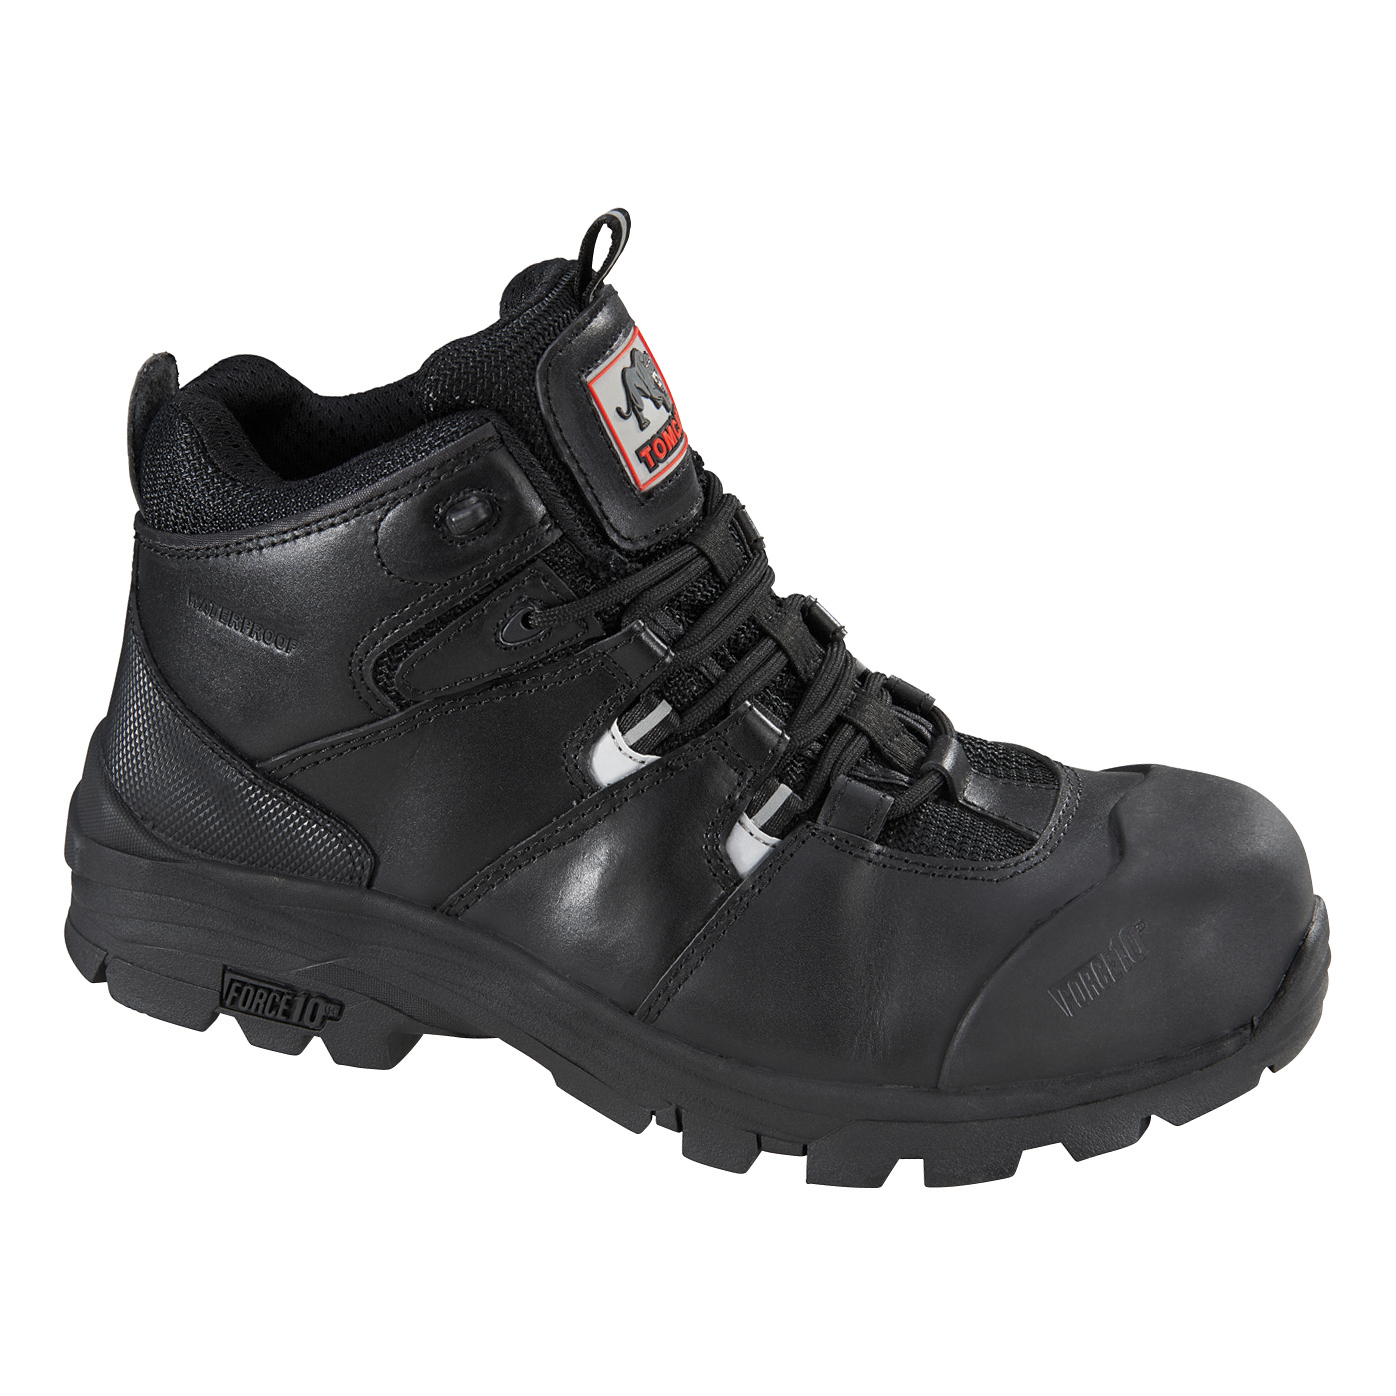 Rockfall Peakmoor Hiker Boot 100% Non-Metallic F/Glass Toecap Size 12 Blk Ref TC4200-12 5-7 Day L/Time